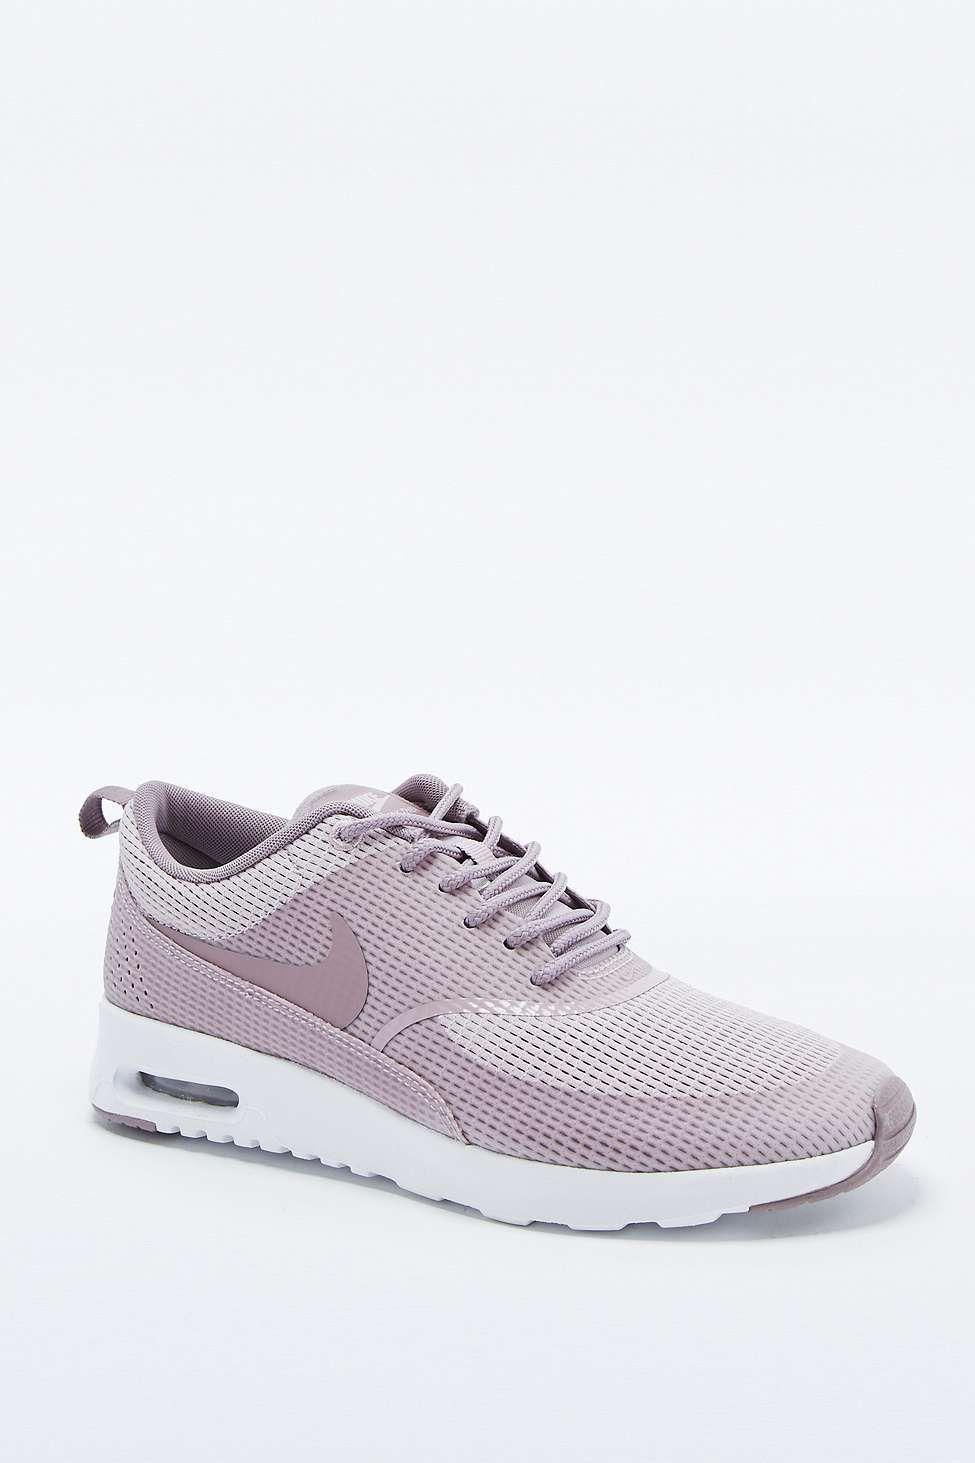 separation shoes b8830 091f7 Nike Air Max Thea Mauve Trainers